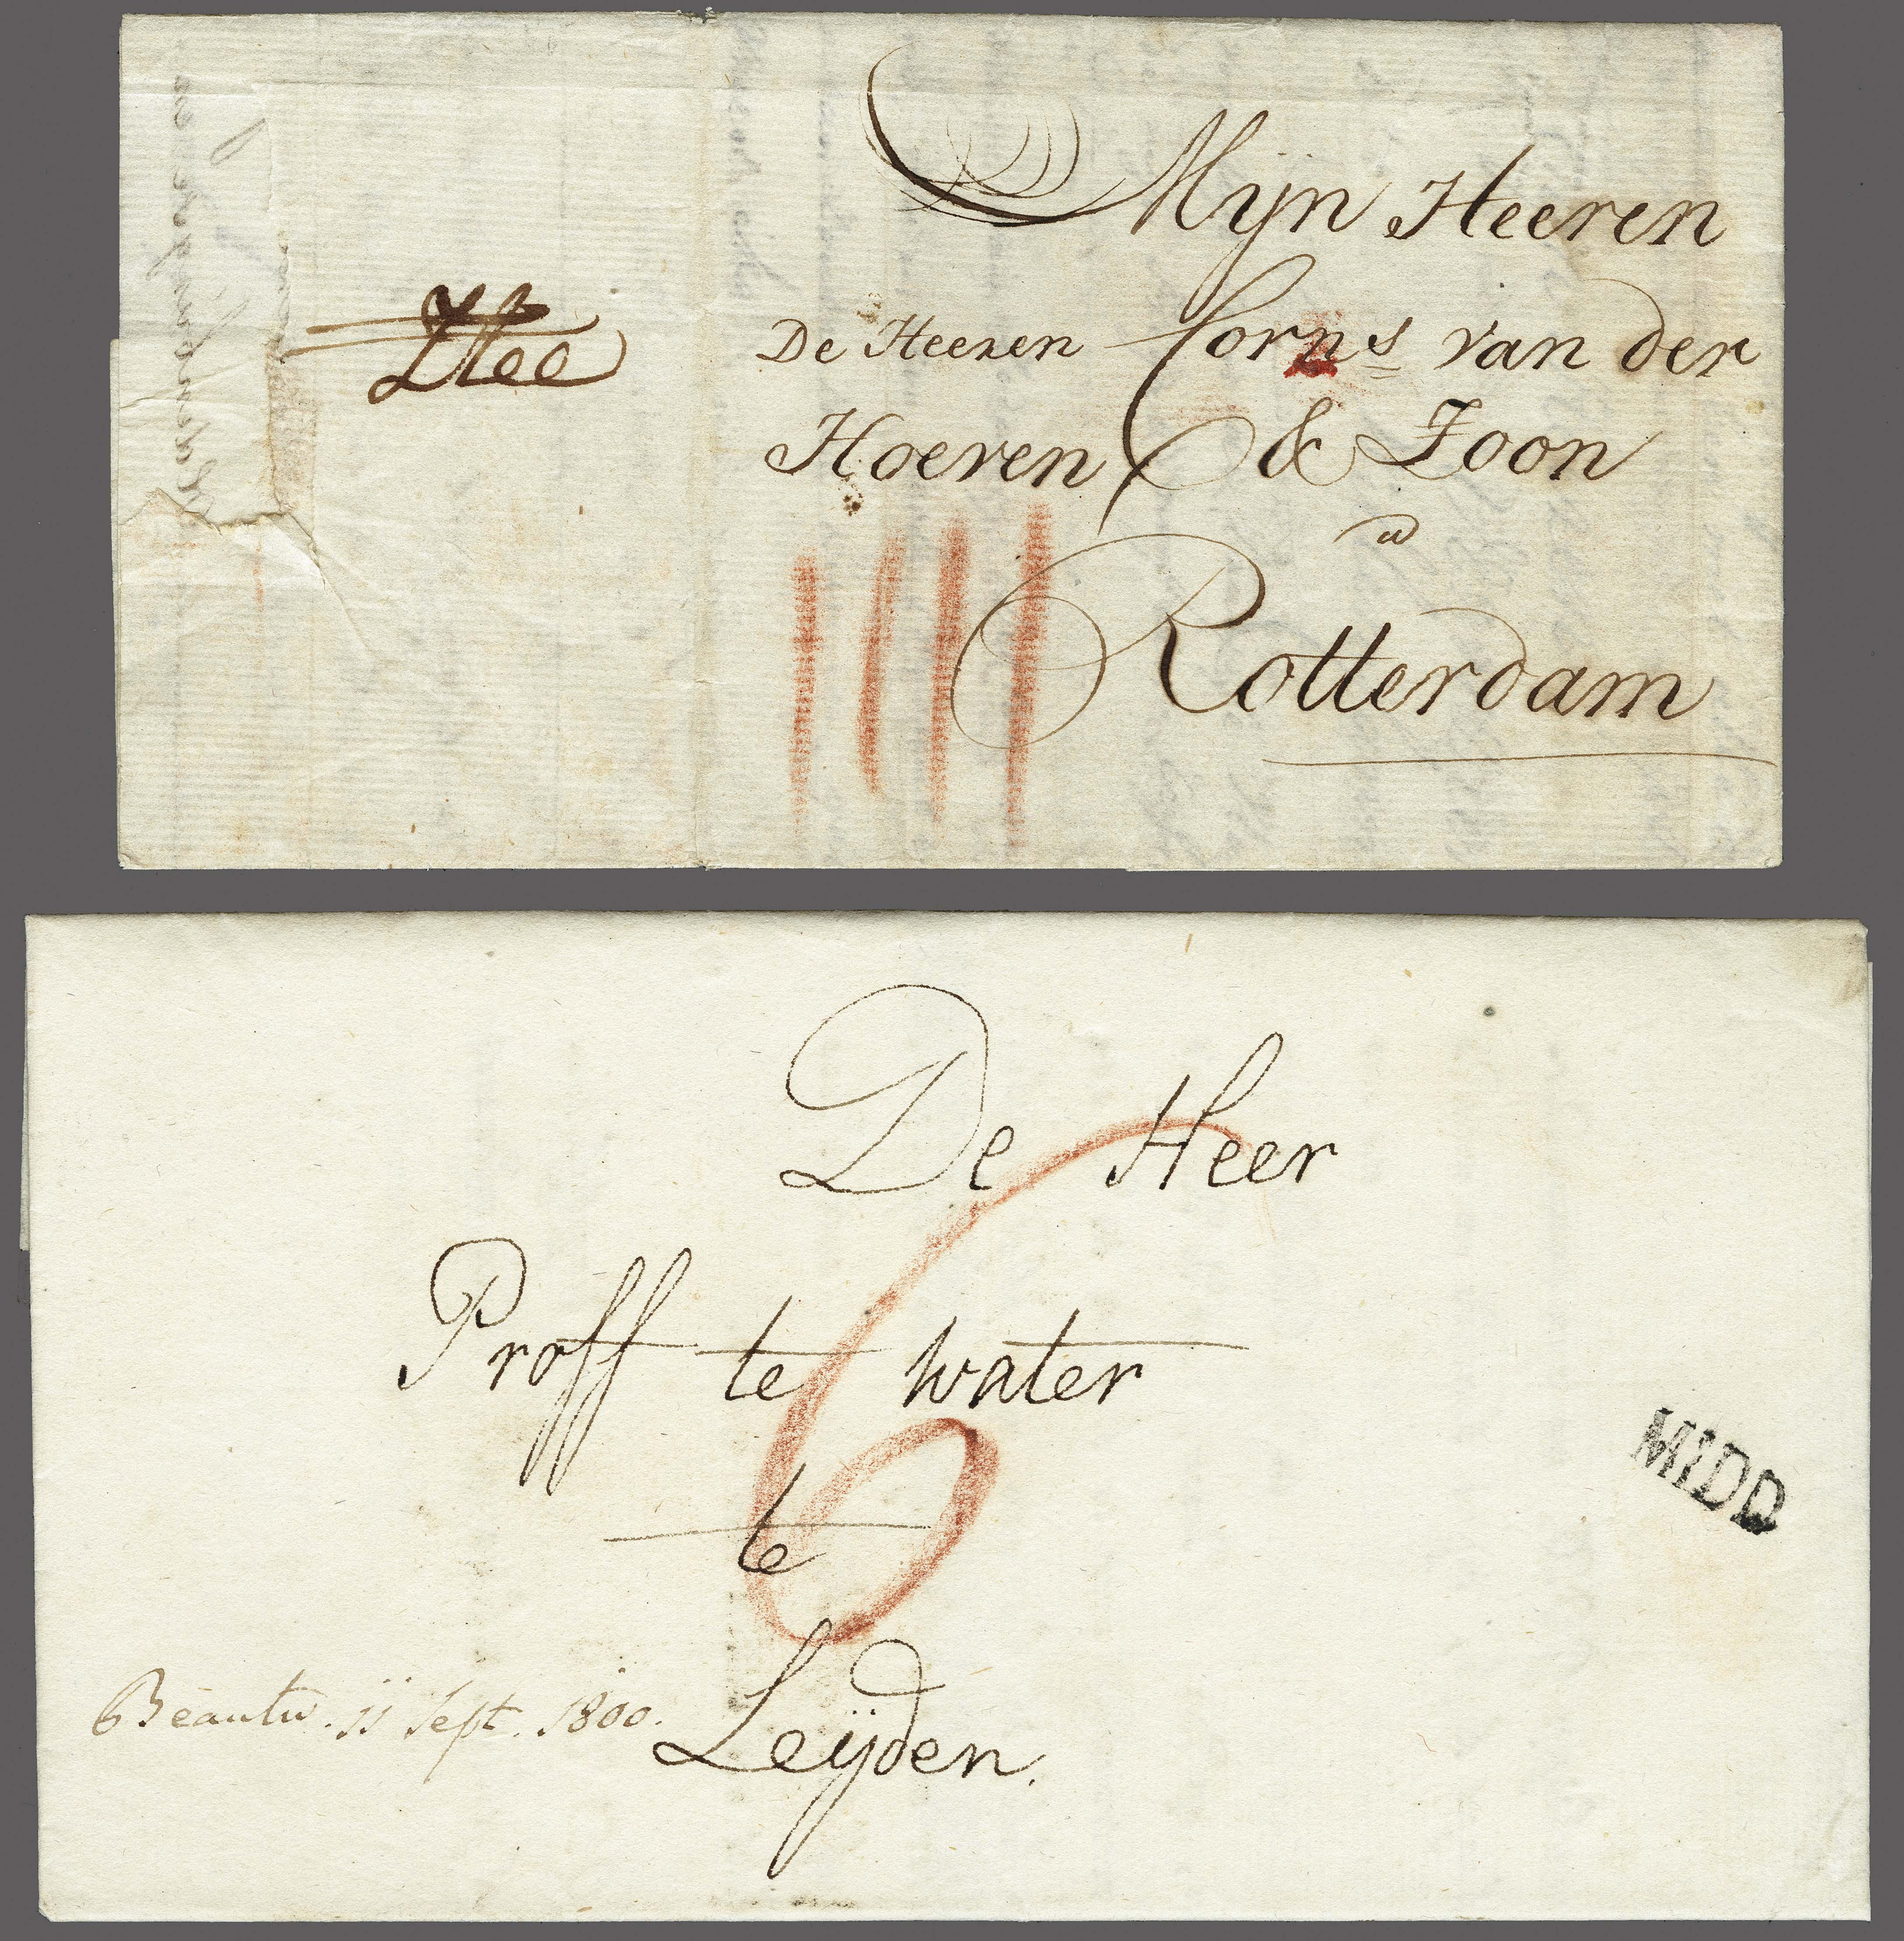 Lot 2317 - Netherlands and former colonies Netherlands -  Corinphila Veilingen Auction 250-253 - Day 3 - Netherlands and former colonies - Single lots & Picture postcards